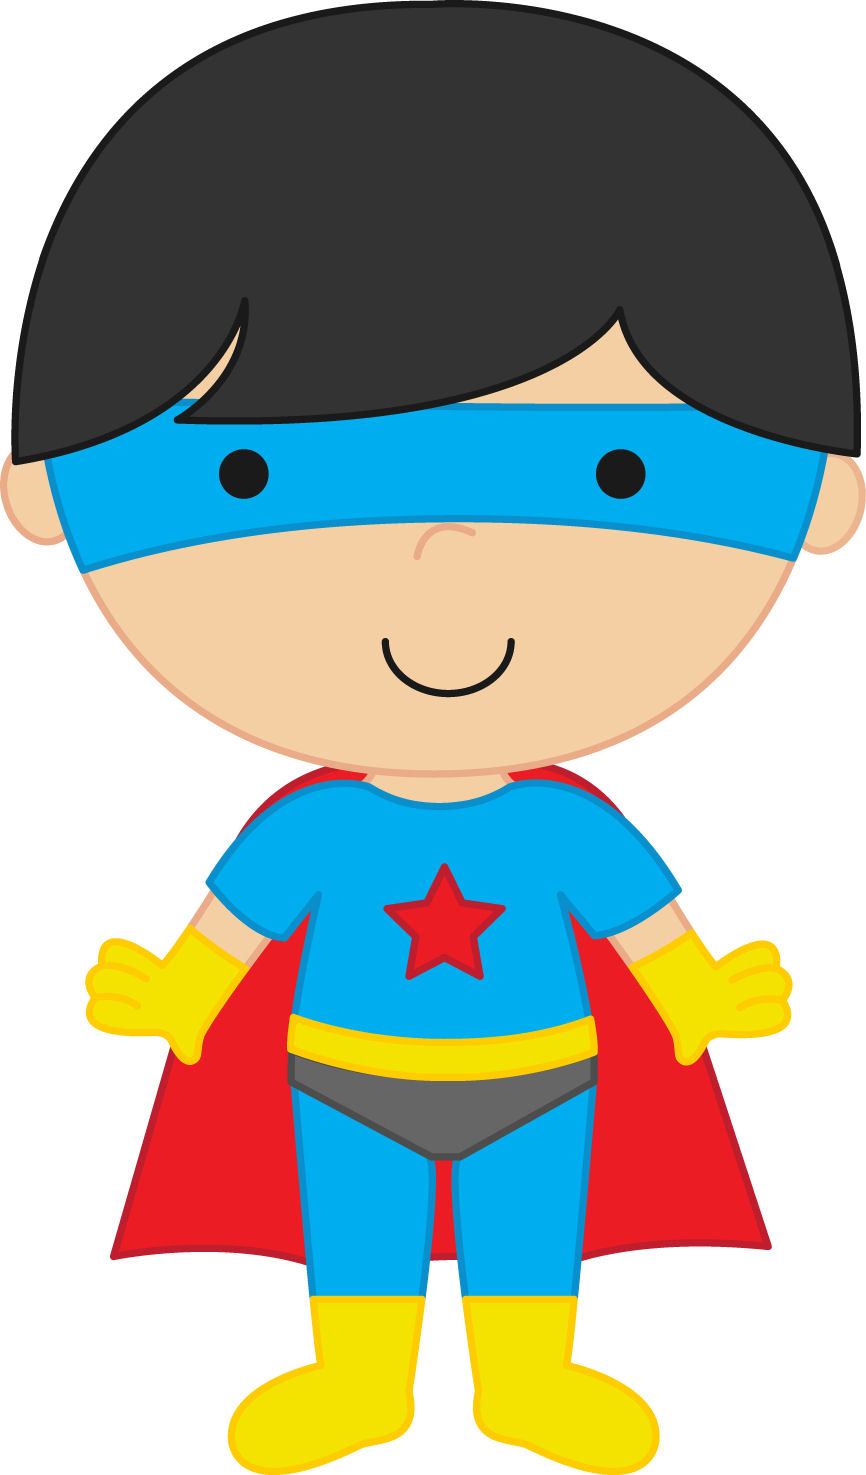 hero clipart clipart panda free clipart images rh clipartpanda com hero clip art free hero clipart free